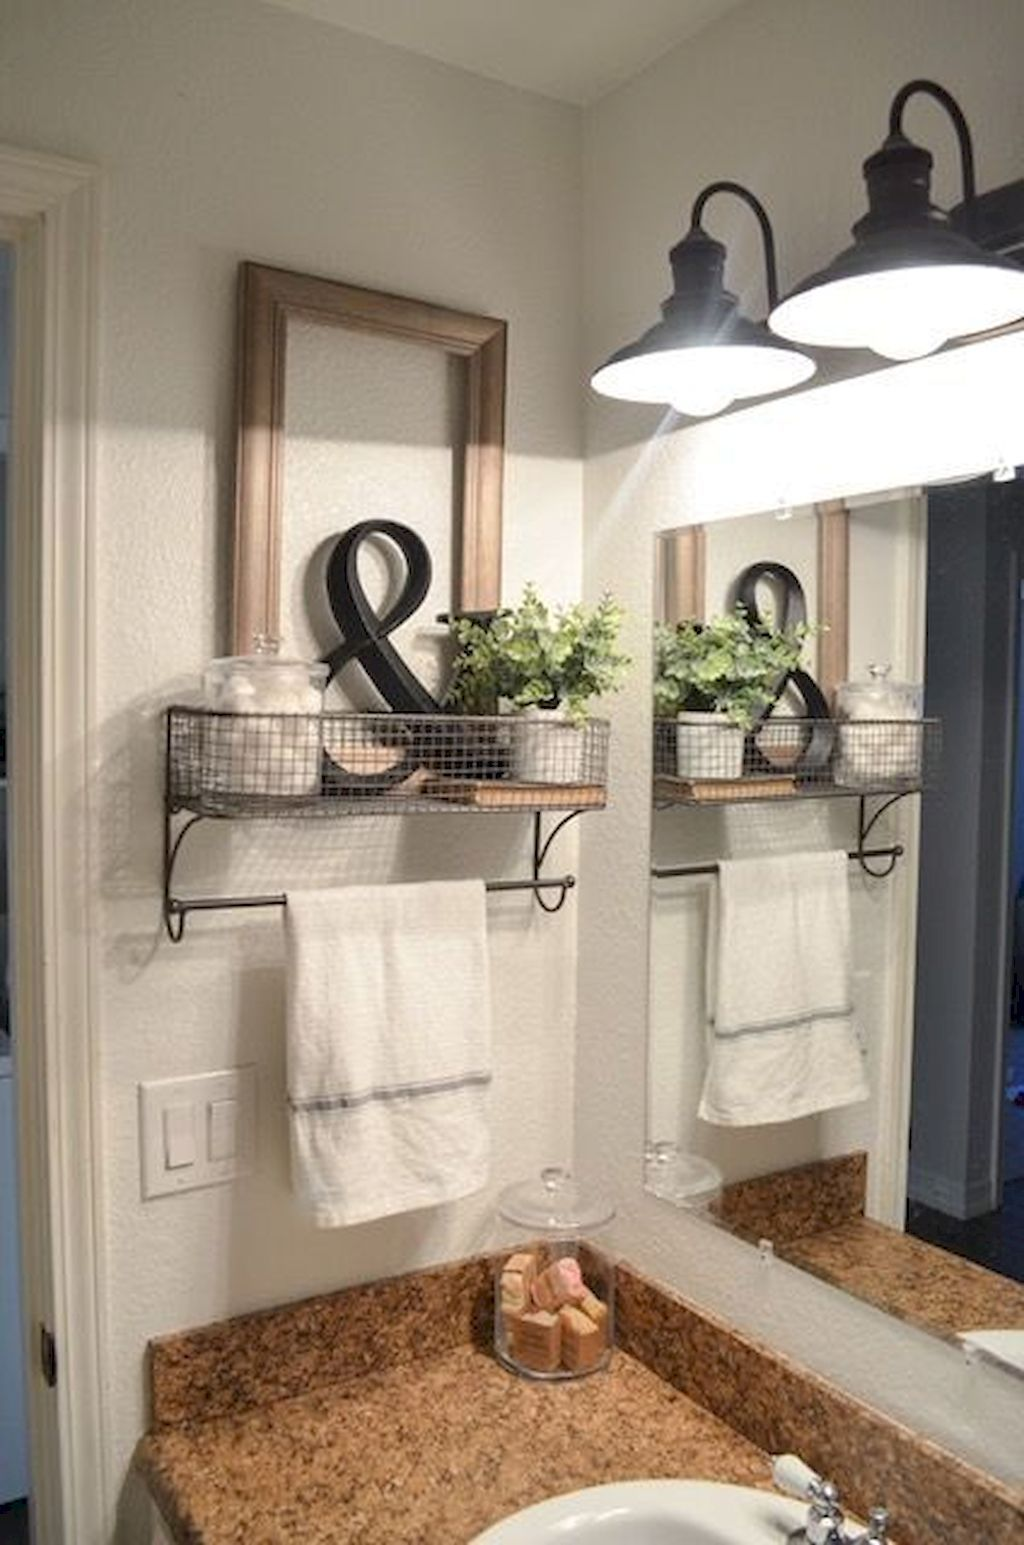 80 Easy Bathroom Remodel Organiation Ideas | Easy bathrooms ...